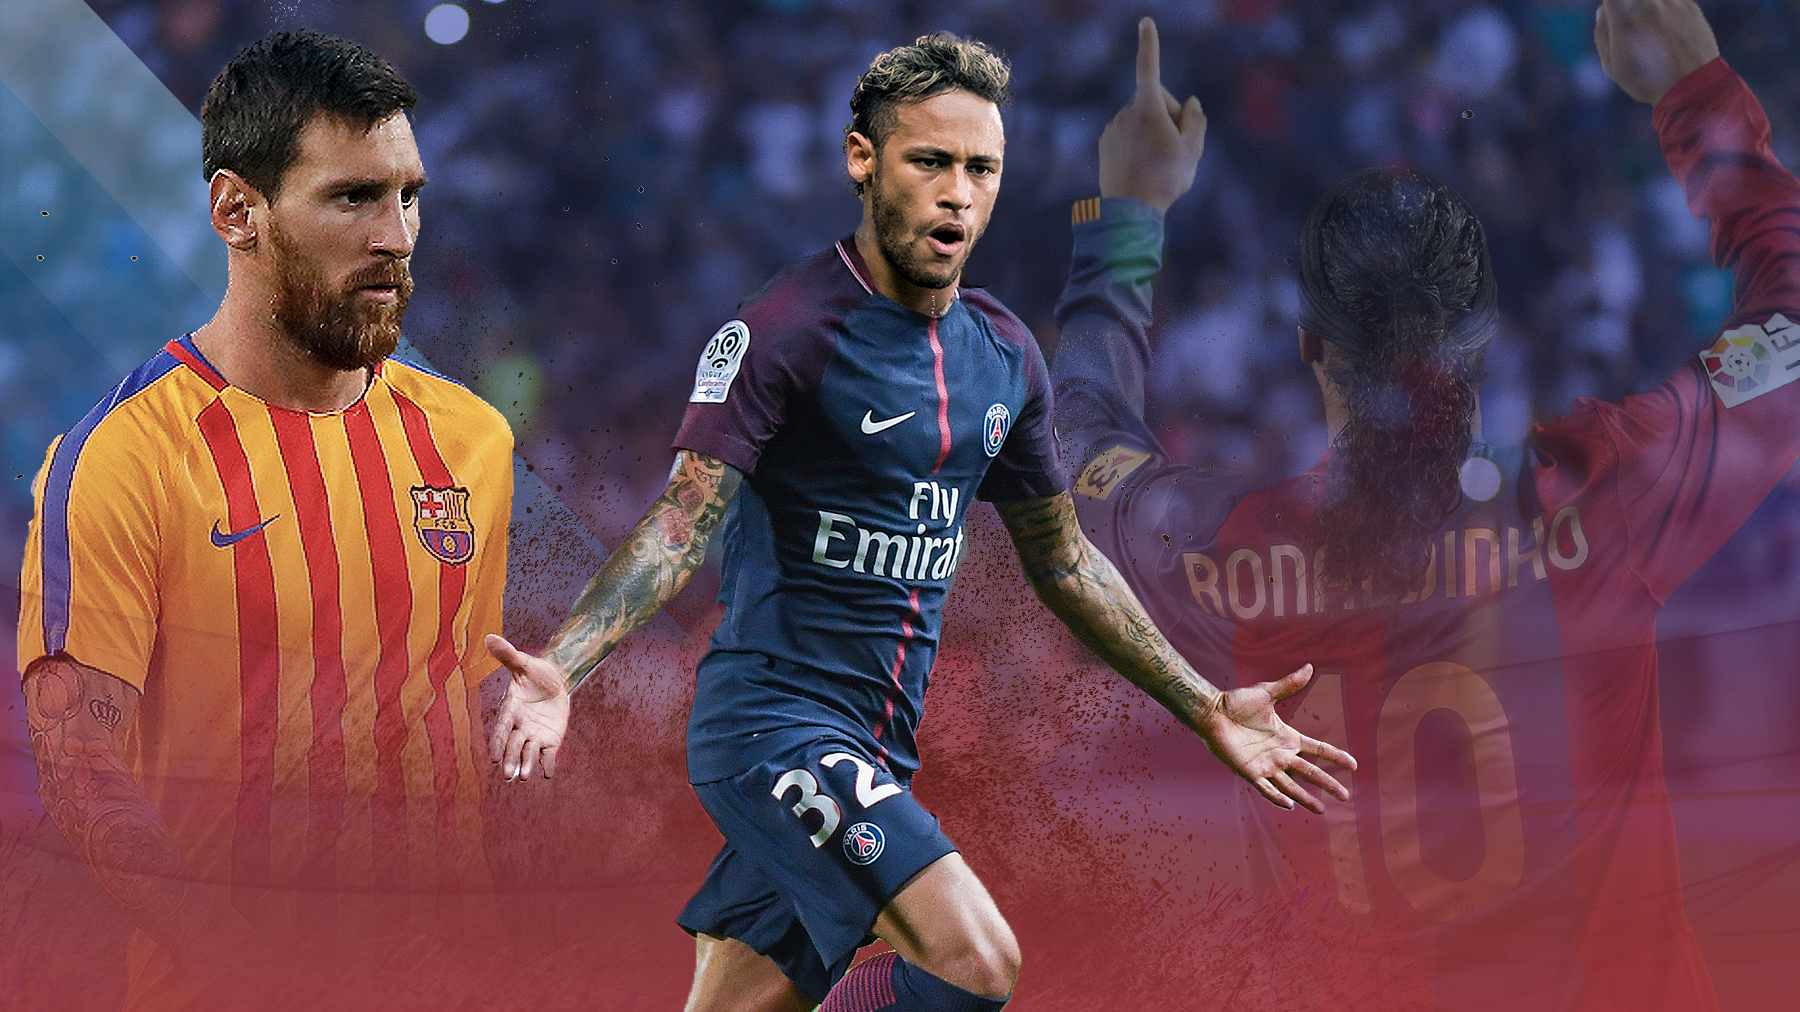 A Ballon d'Or bargain: Why Neymar's world-record £198m move to PSG could prove a snip